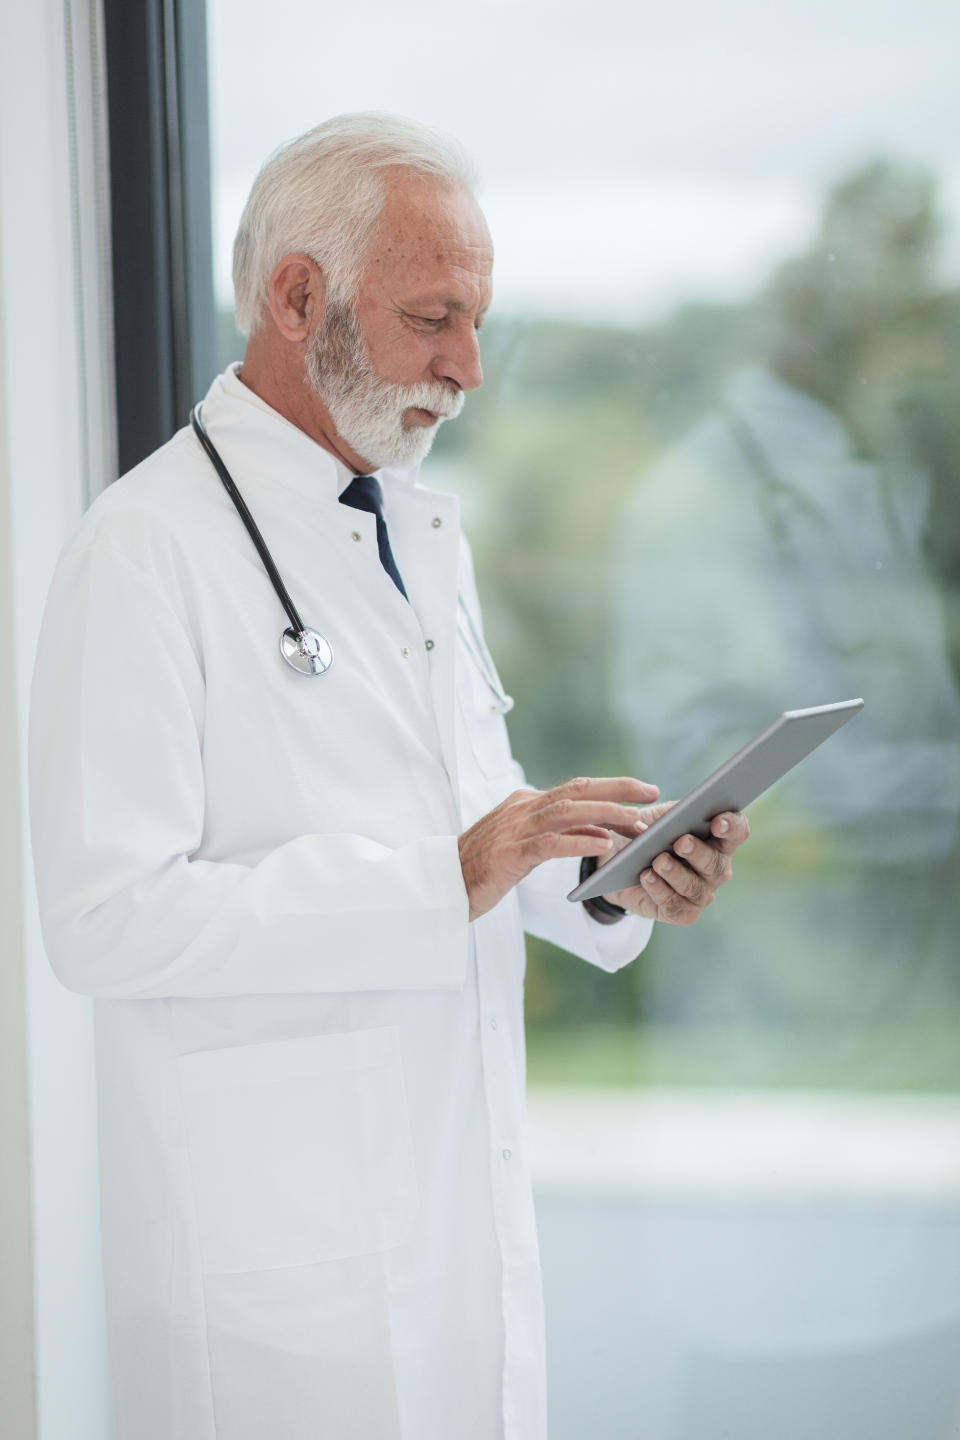 male doctor standing